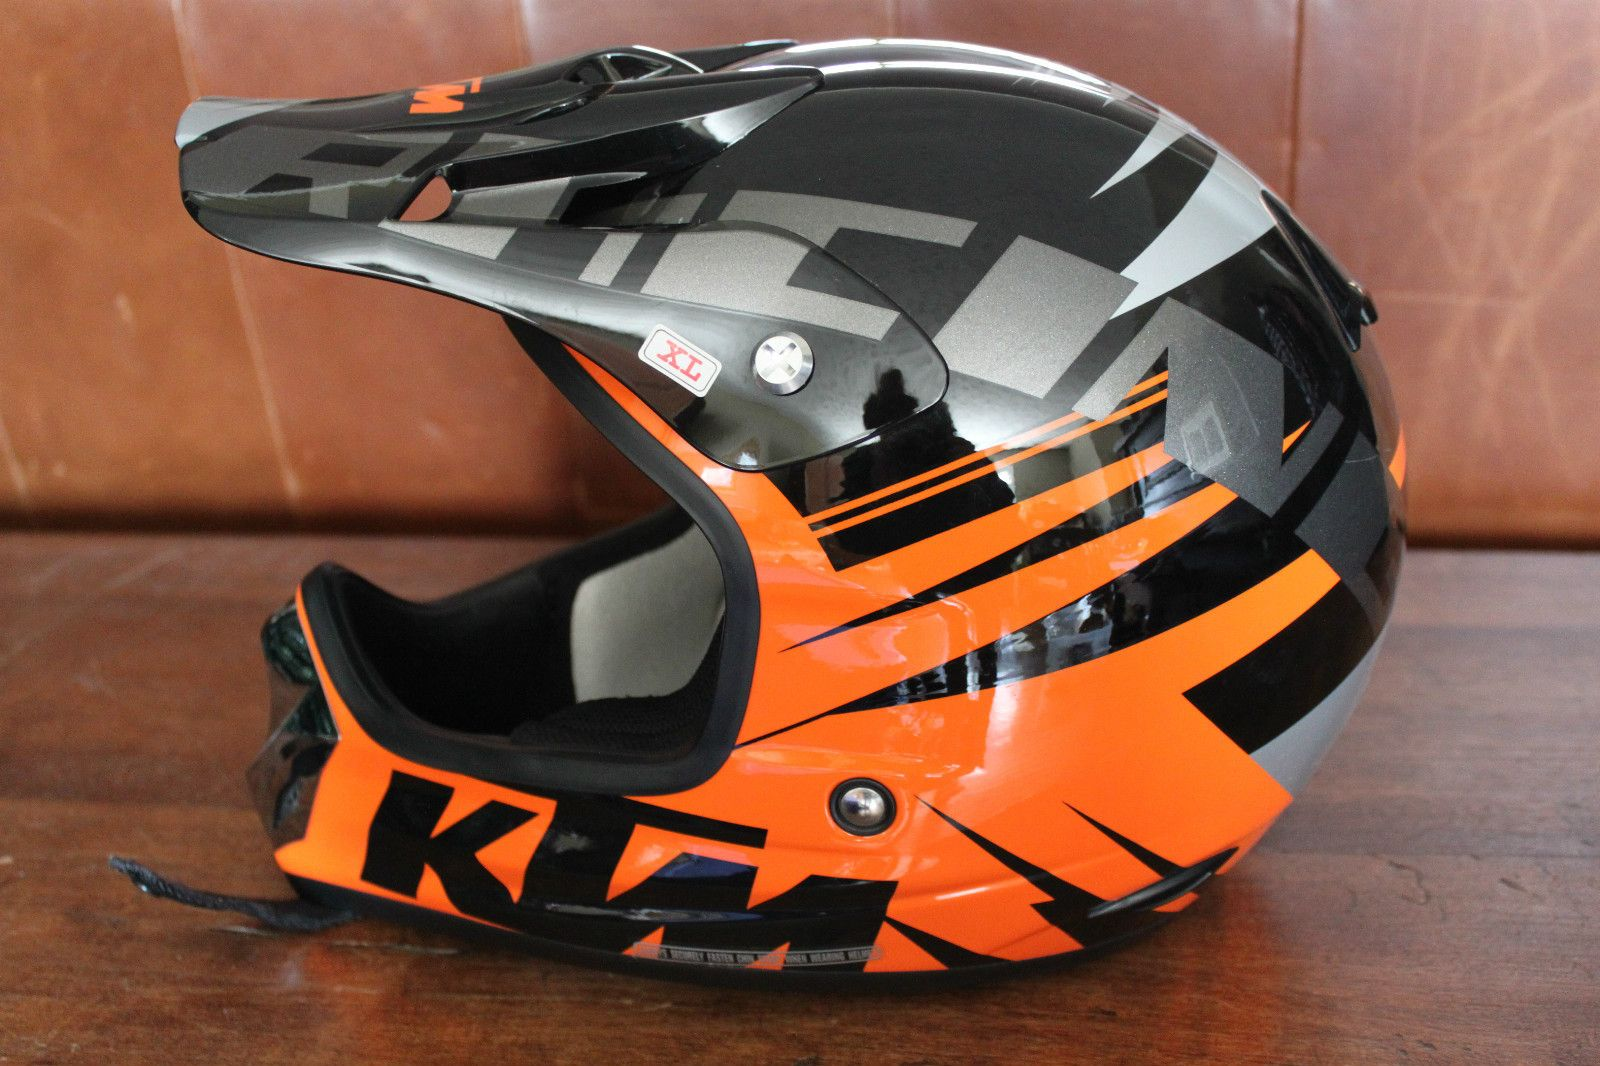 ktm motorcycle helmet racing pro men 39 s used dirt bike. Black Bedroom Furniture Sets. Home Design Ideas